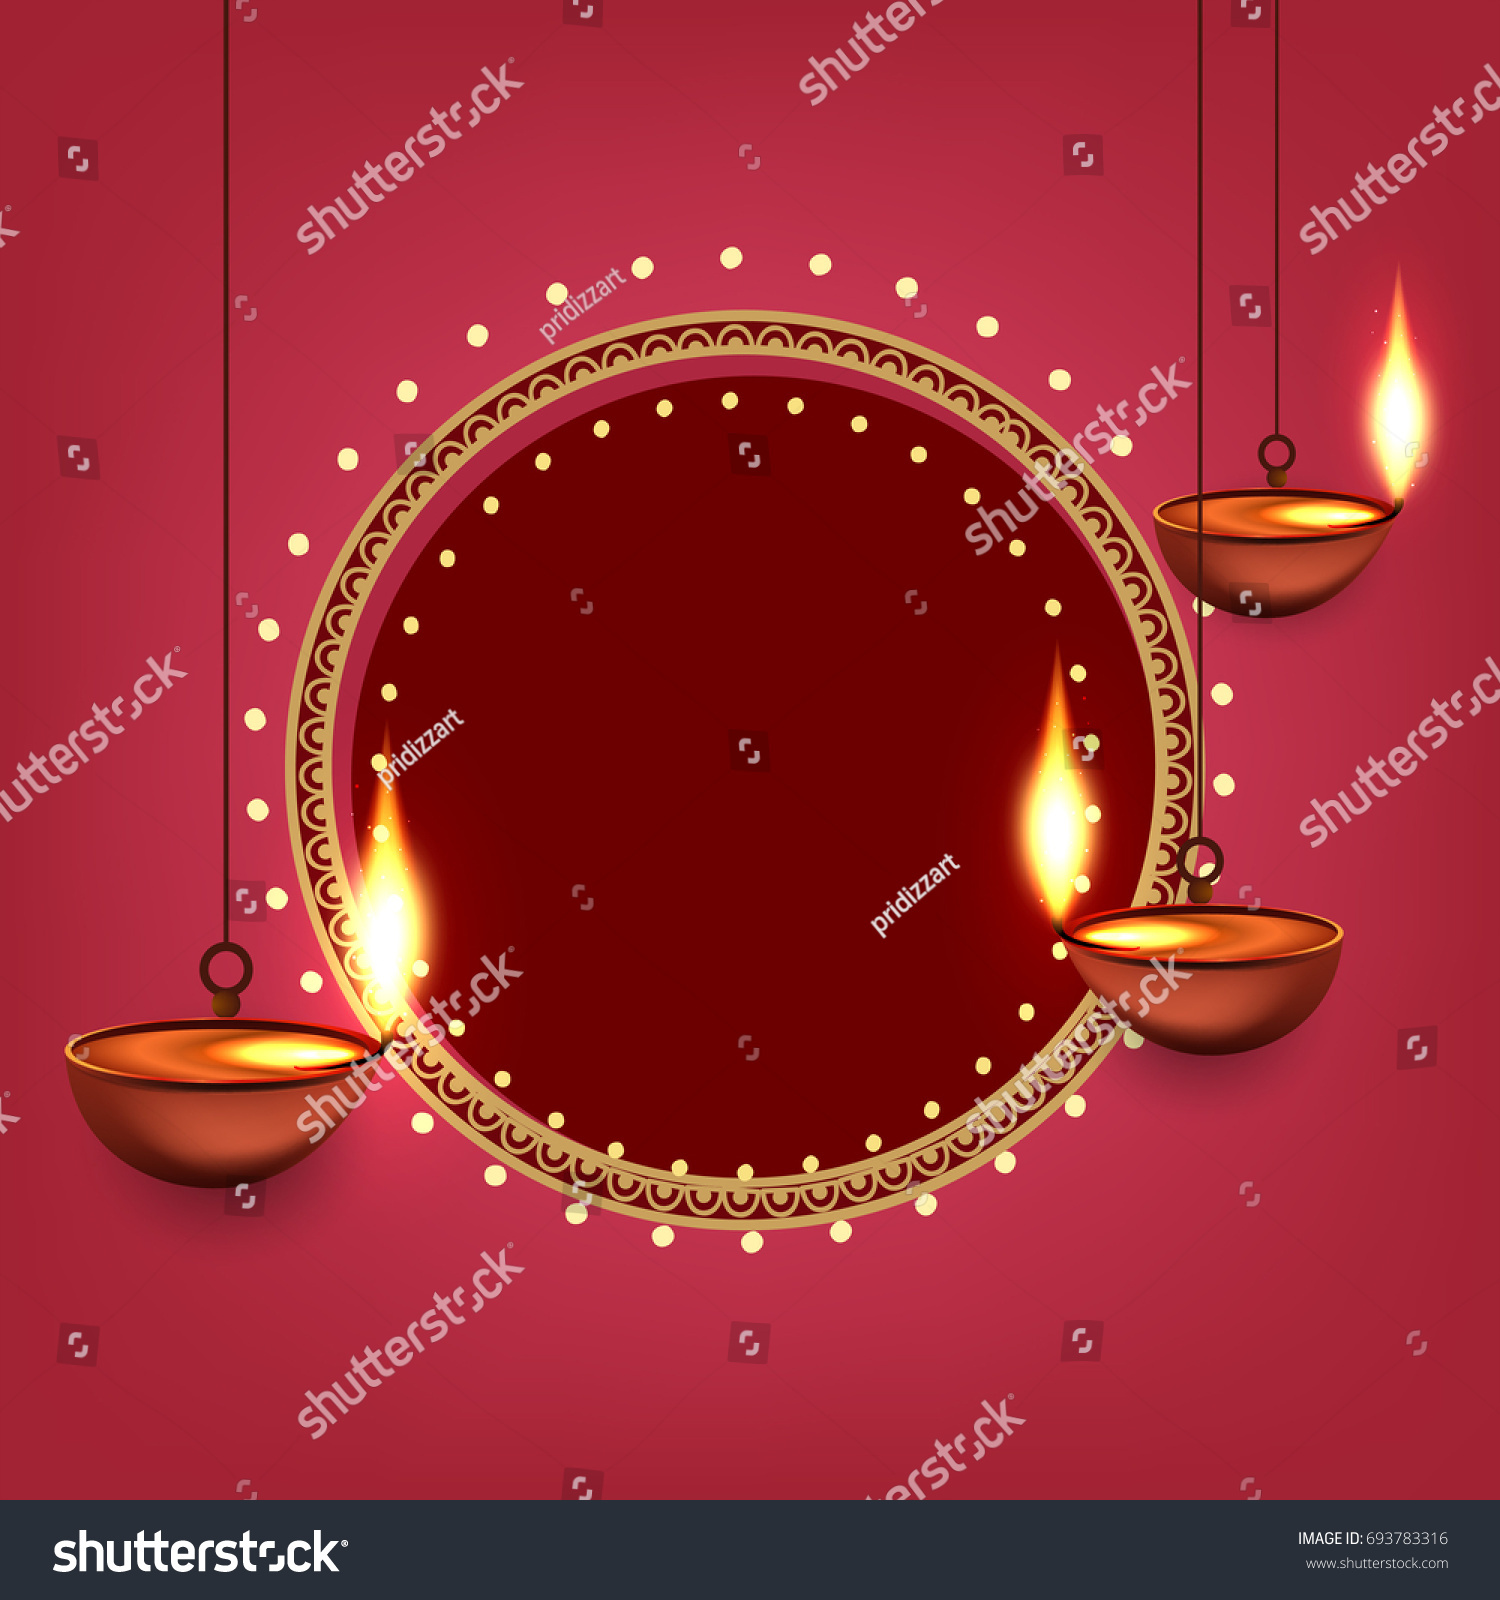 happy diwali wallpaper design template stock photo (photo, vector